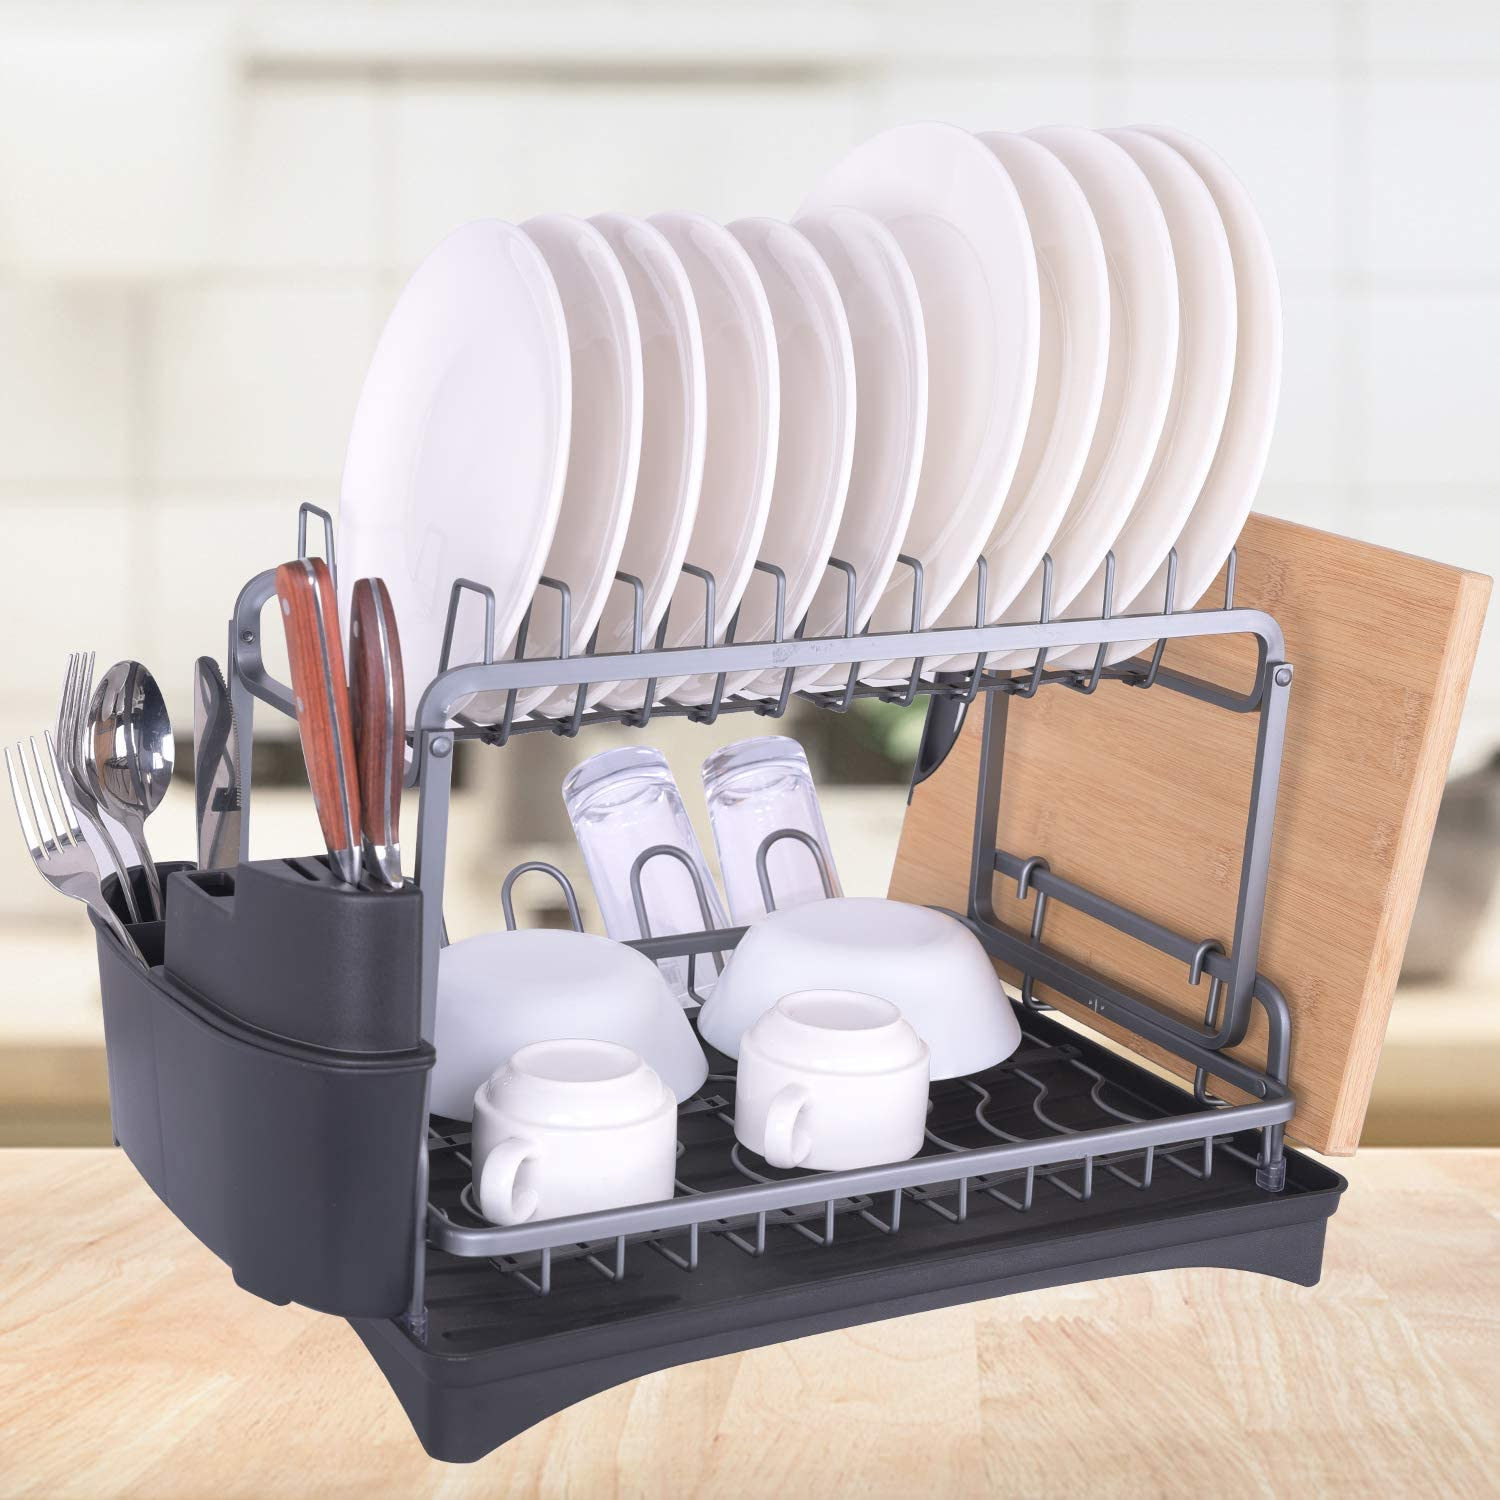 Aluminum Dish Drying Rack, Dailyart 2 Tier Dish Rack Large Capacity, Dish Rack and Drainboard Set for Kitchen Counter, with Removal Top Shelf & Utensil Holder, Rust Proof Modern Design, Gray